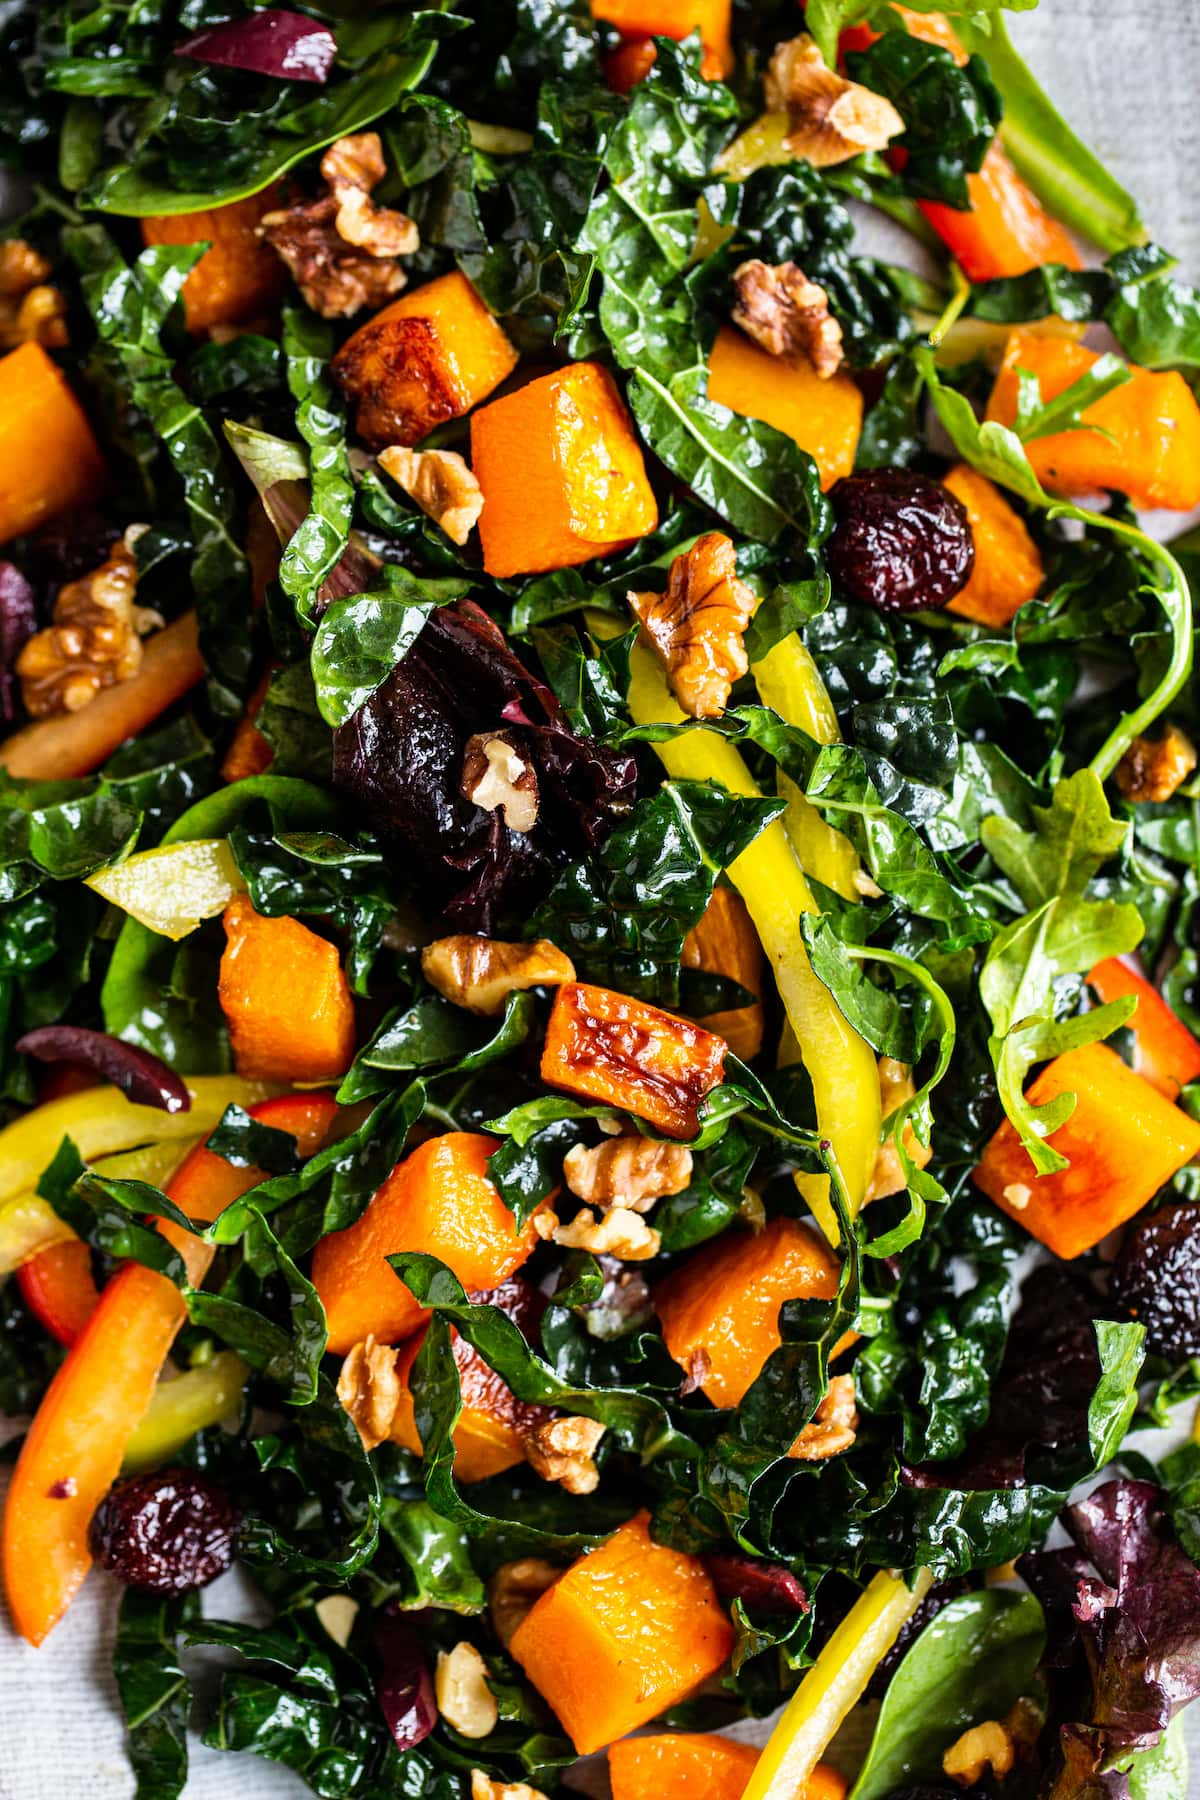 Close up photo of salad with kale, butternut squash, pepper, cranberries and walnuts.